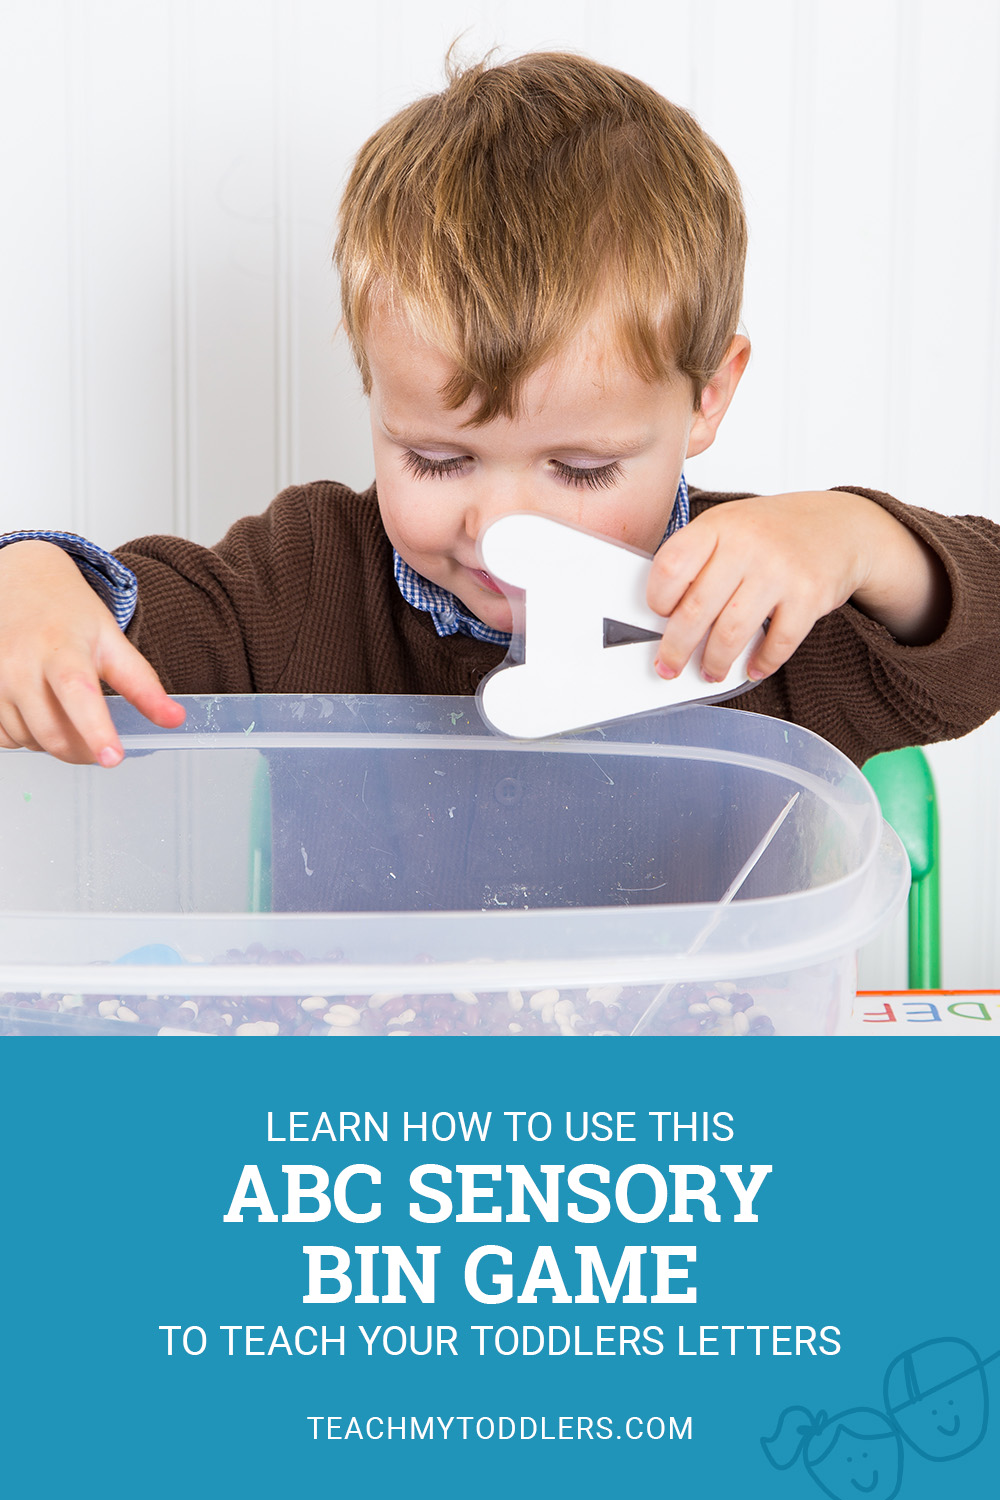 Learn how to use this abc sensory bin letter game to teach your toddlers letters